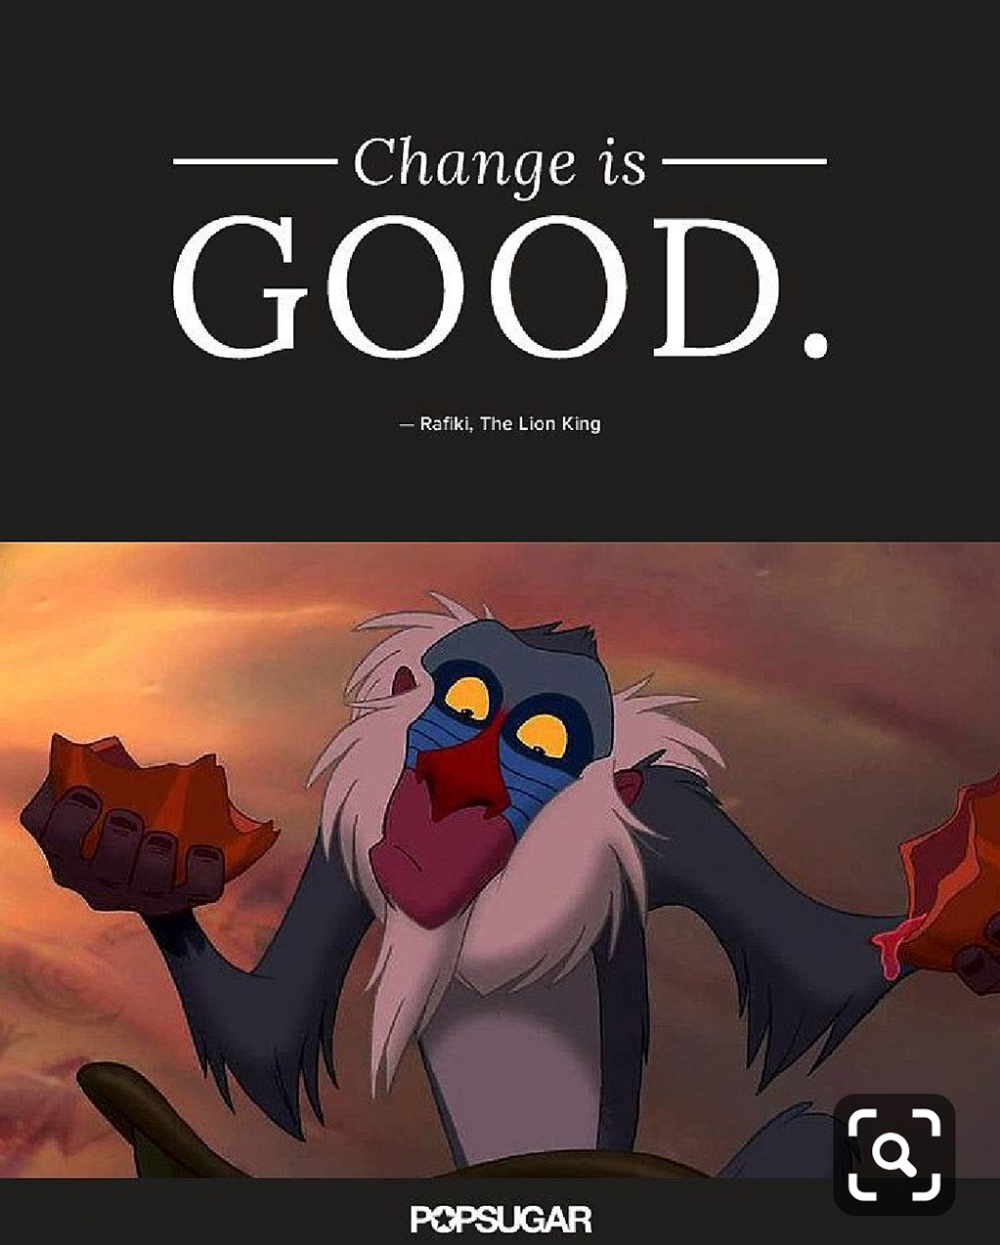 20 Jungle Laws Learned From The Lion King Koees Blog Beautiful Disney Quotes Disney Quotes Iphone Wallpaper Quotes Funny